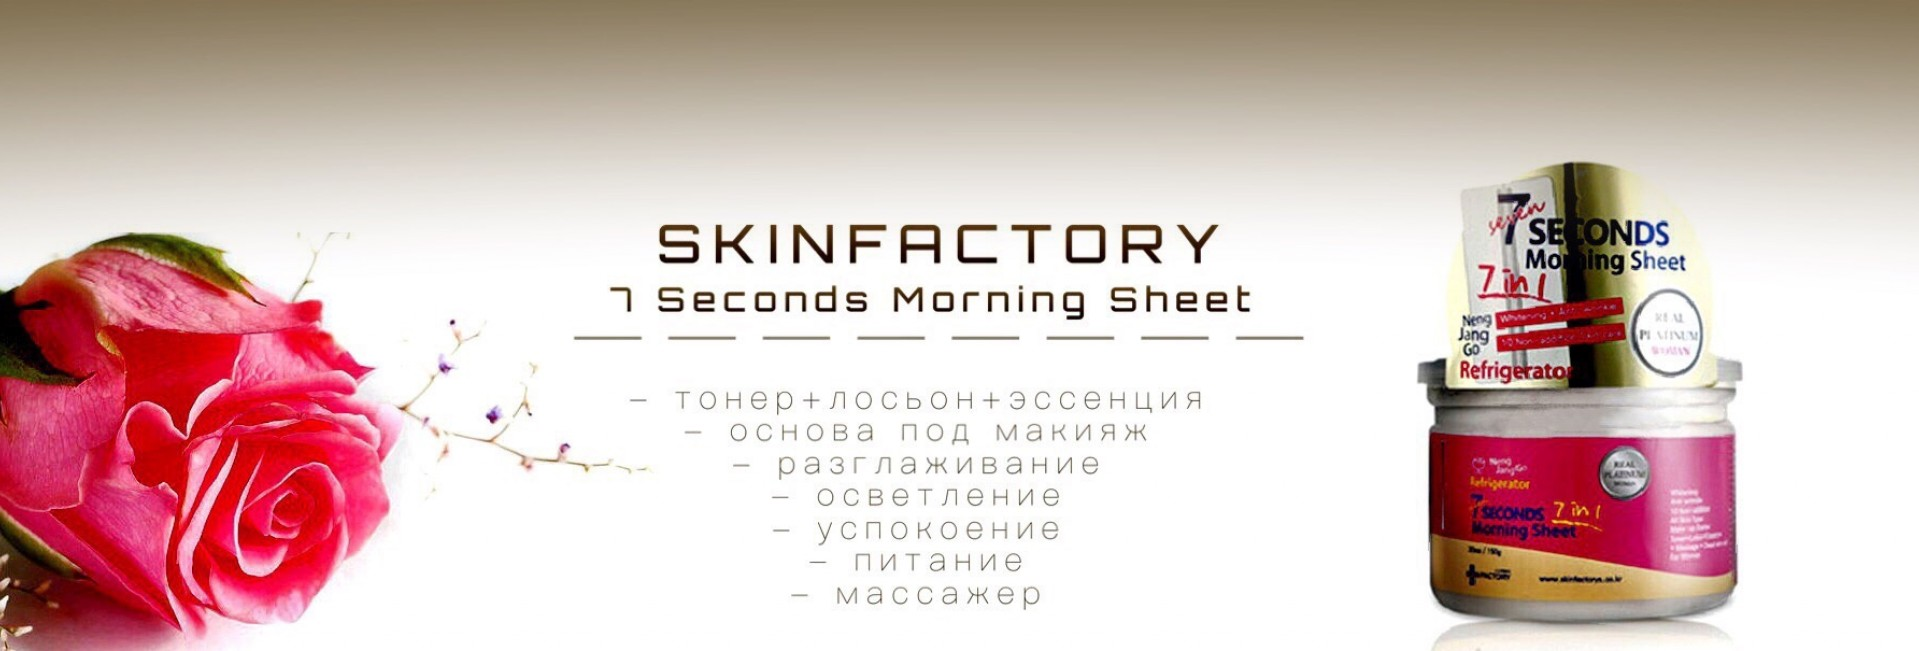 skinfactory 7 seconds morning sheet